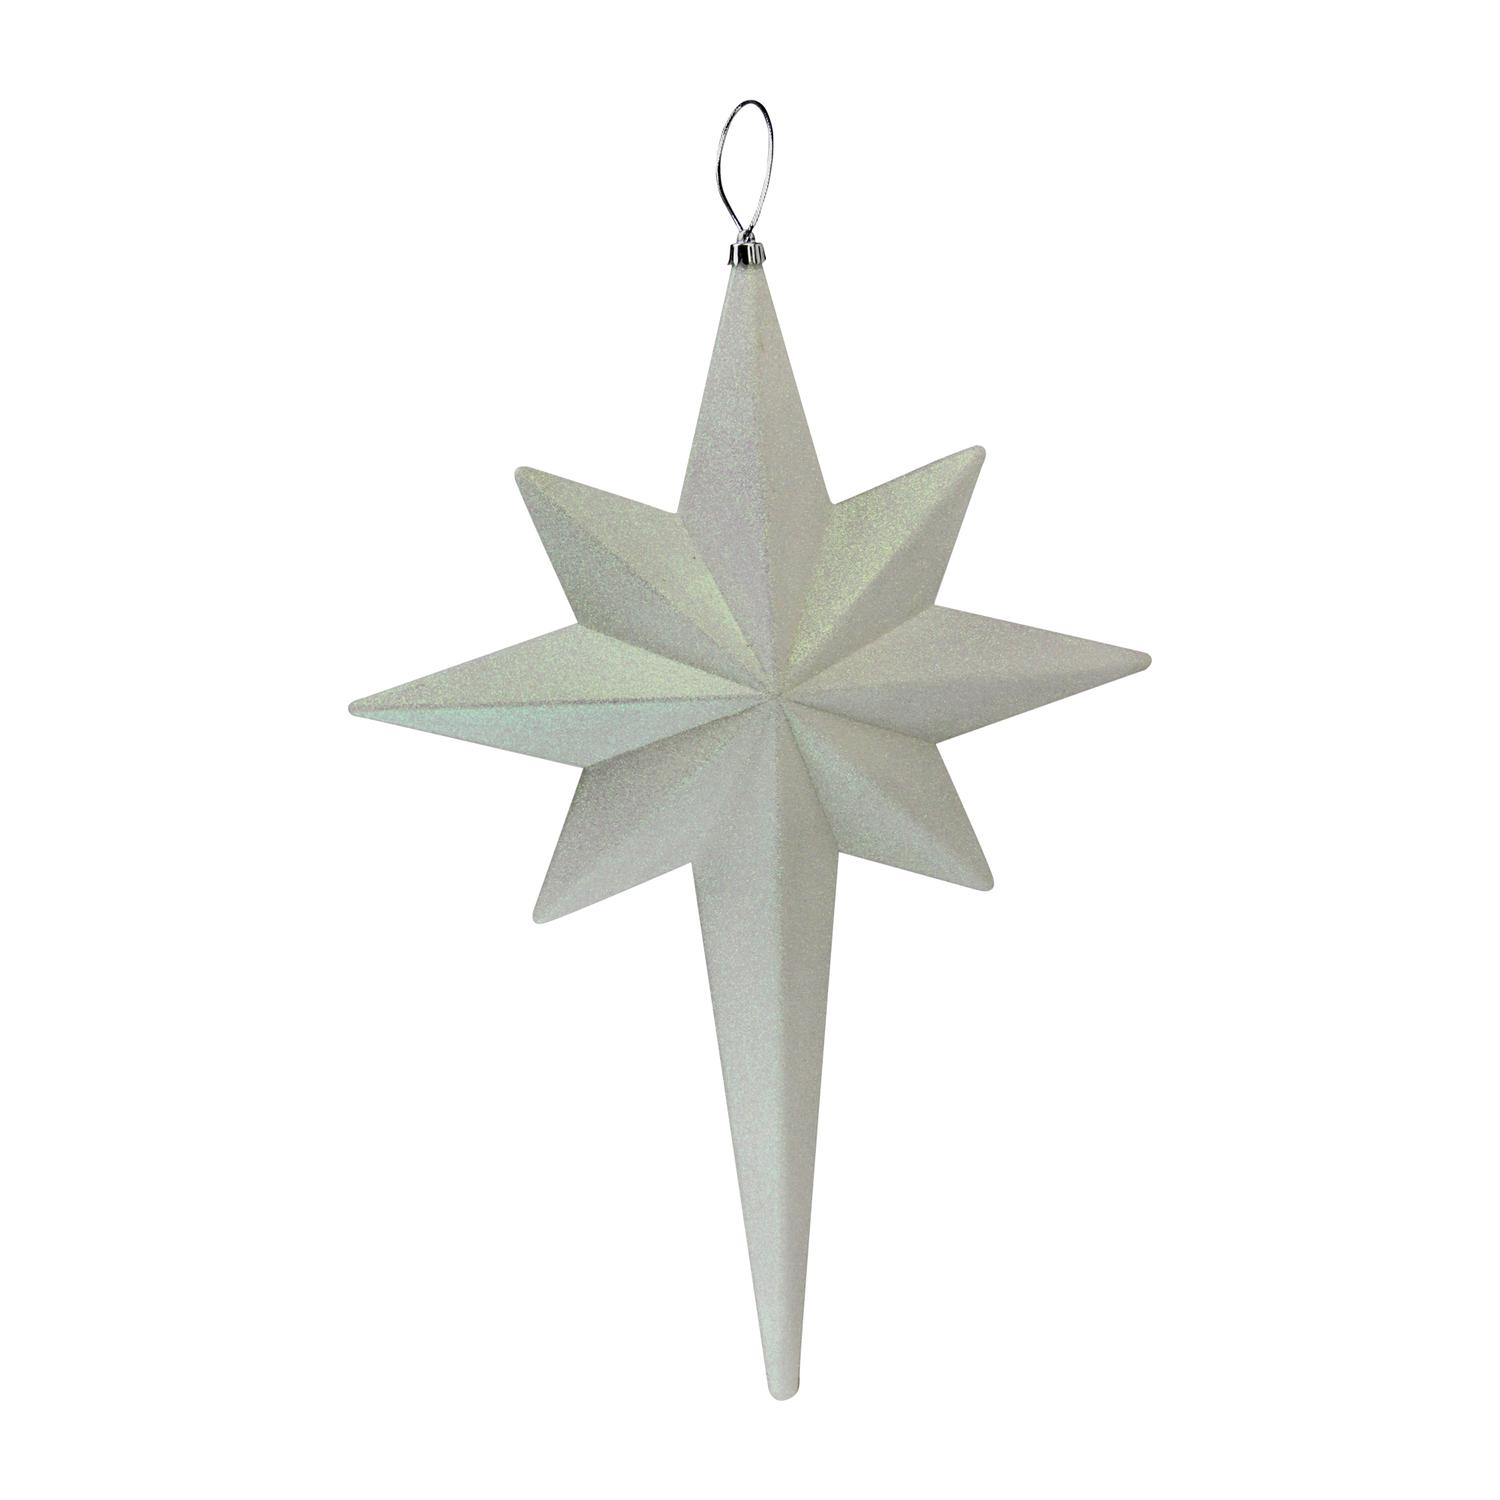 "20"" Winter White Glittered Bethlehem Star Shatterproof Christmas Ornament - image 1 de 2"